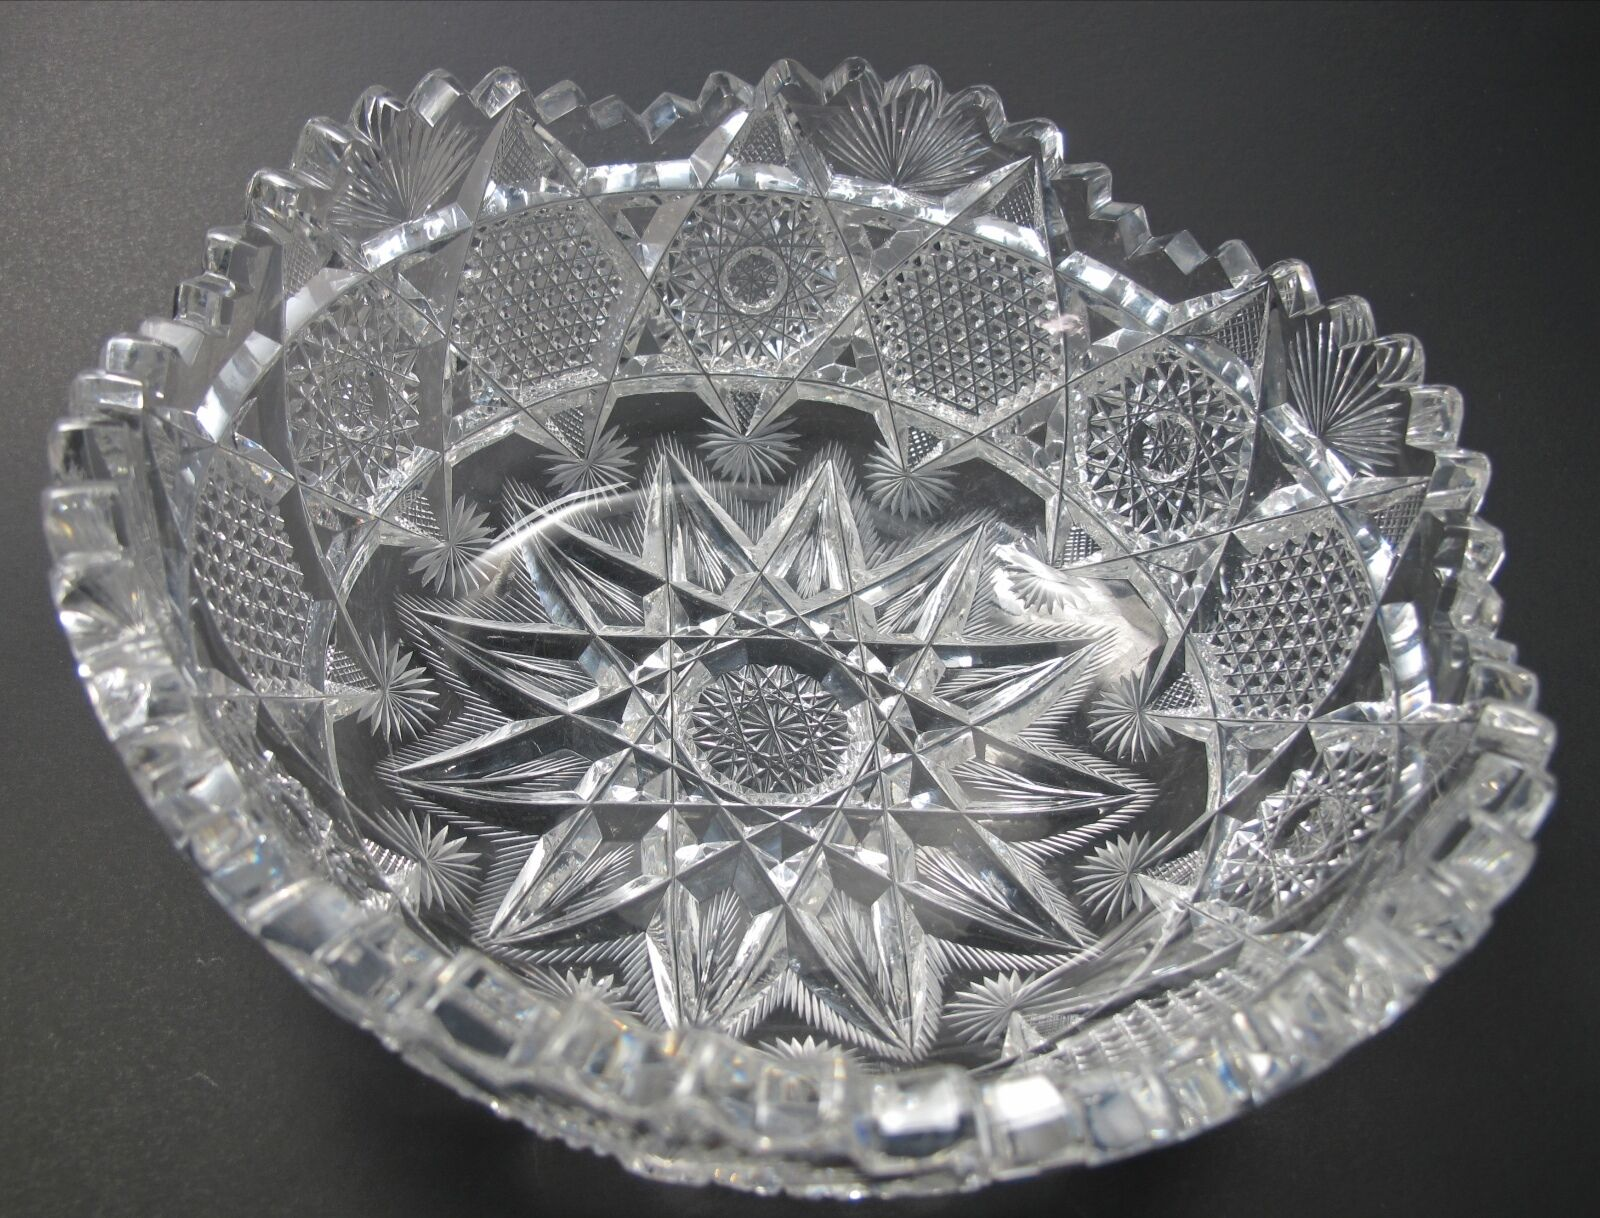 American brilliant period cut glass bowl abp antique How can i cut glass at home